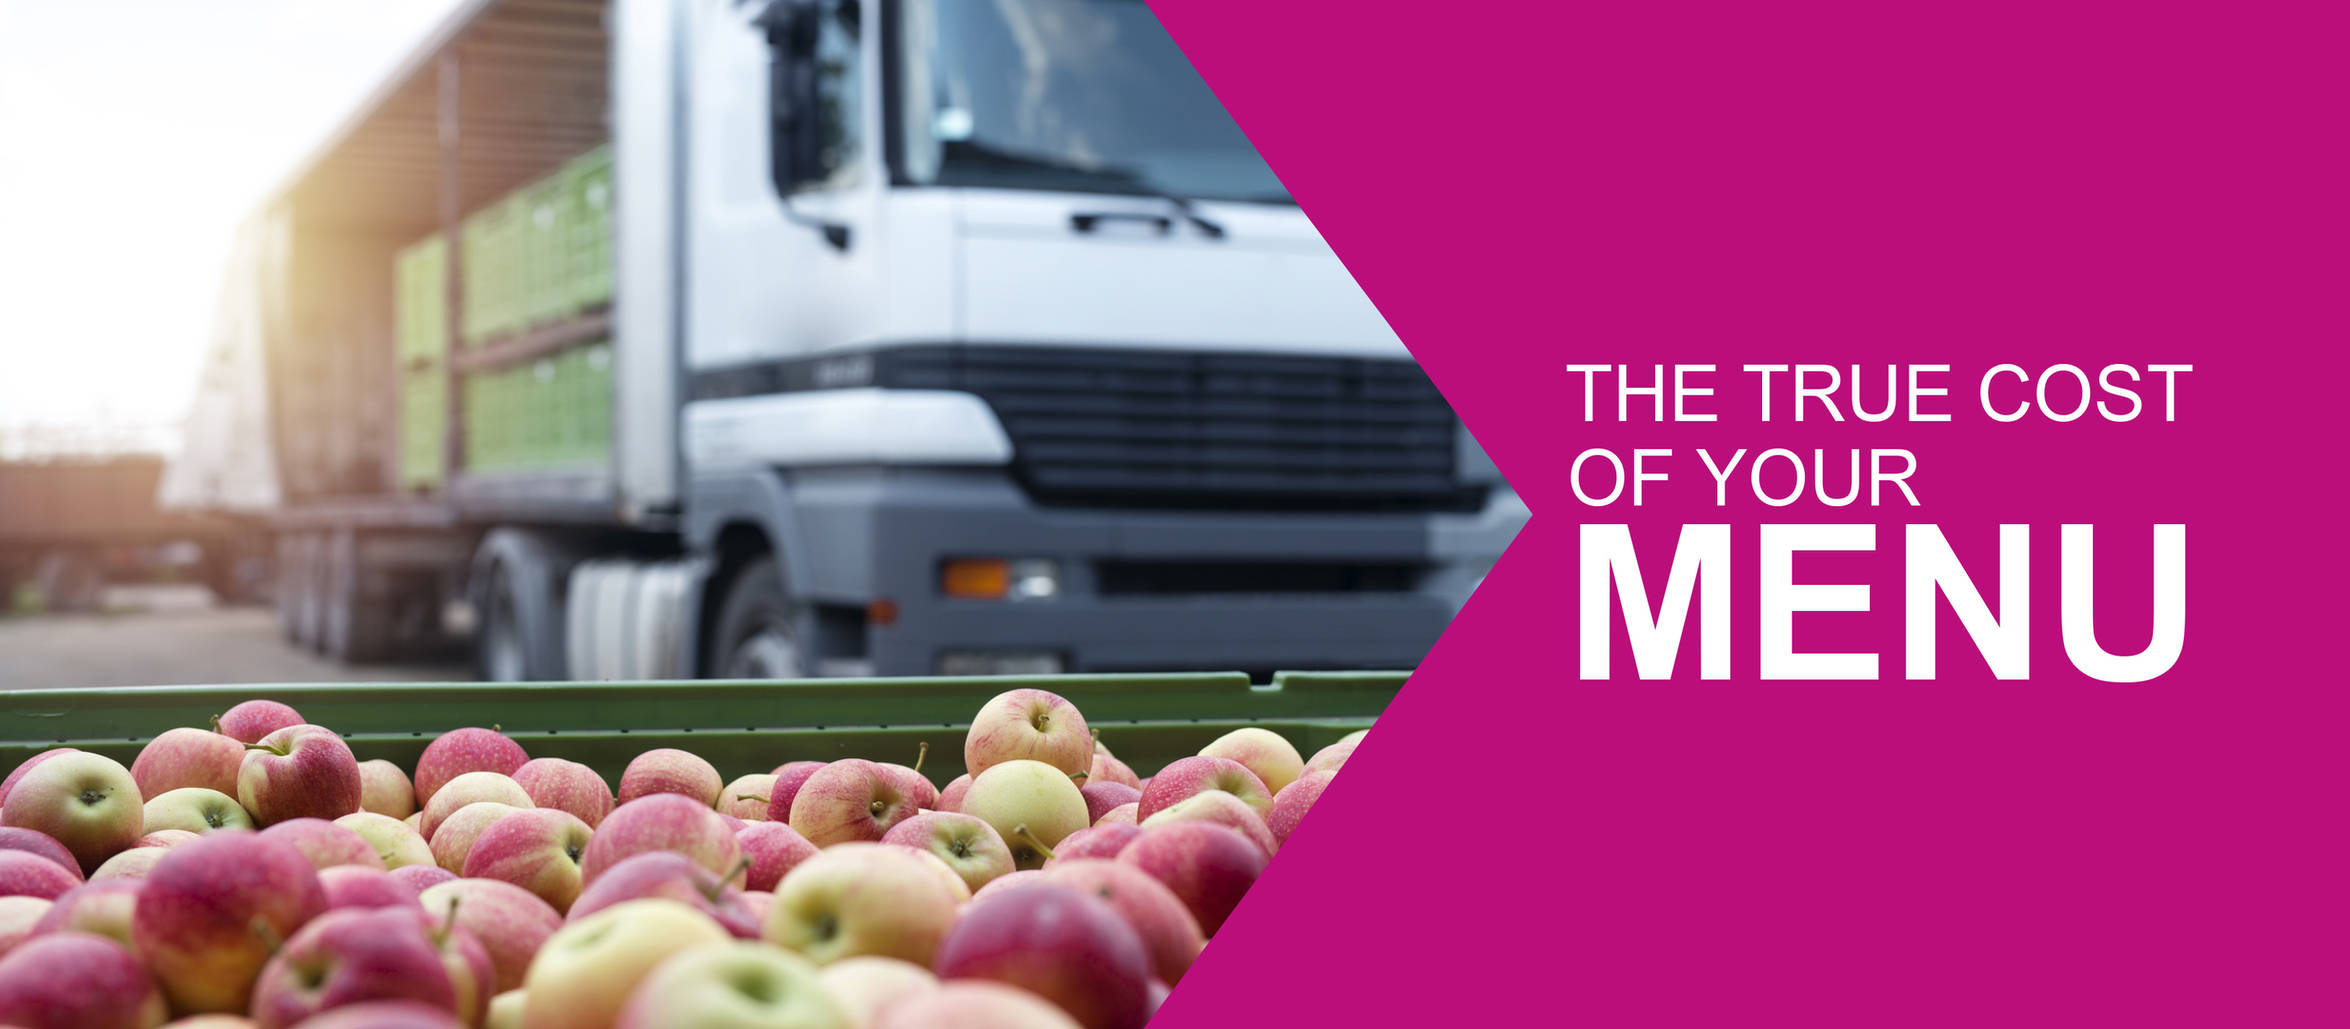 Food miles:the true cost of your menu blog picture of a crate of apples with truck in the background